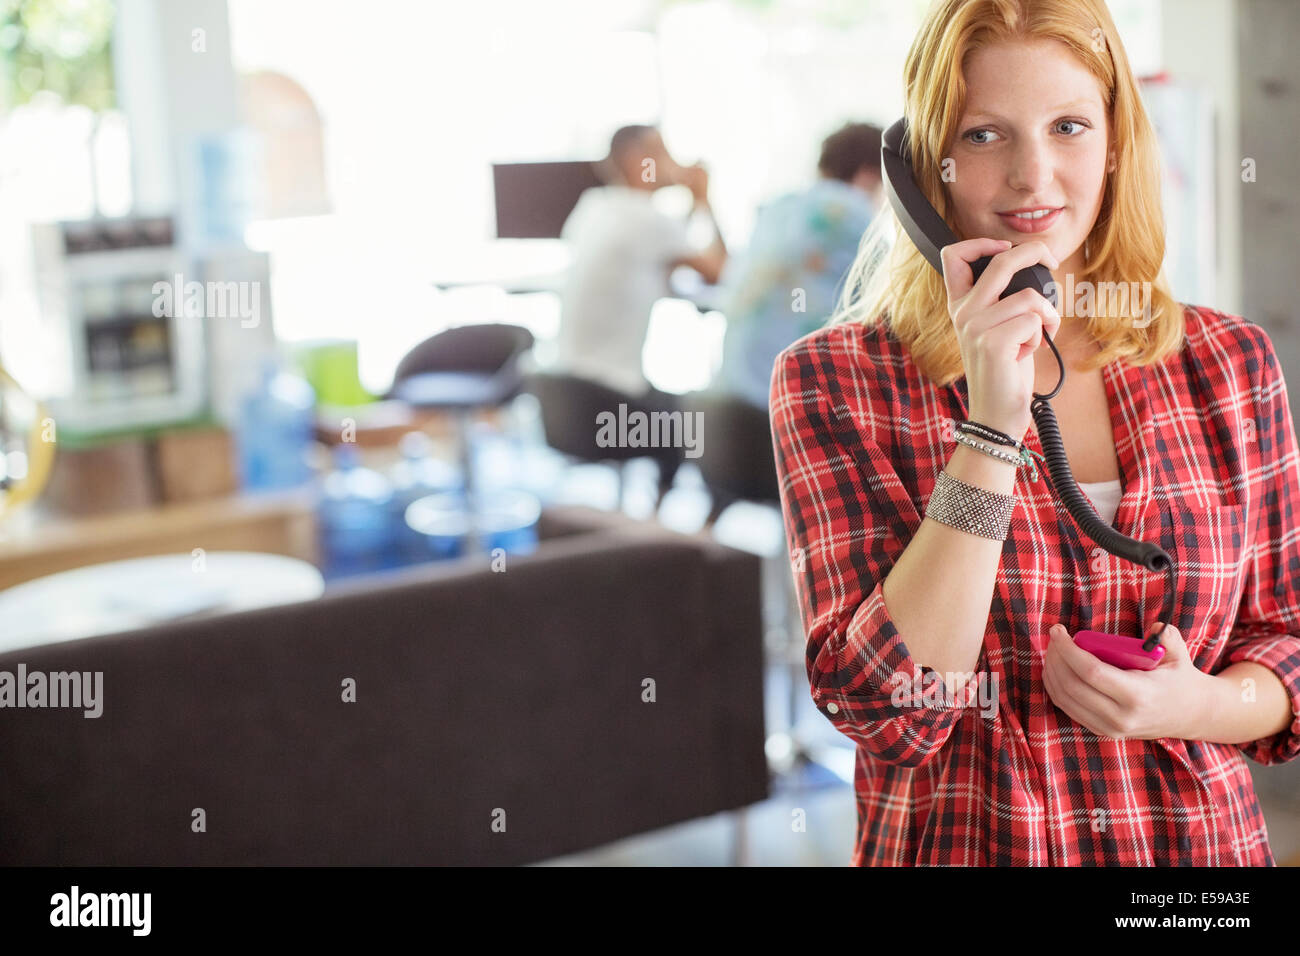 Woman talking on phone in office - Stock Image